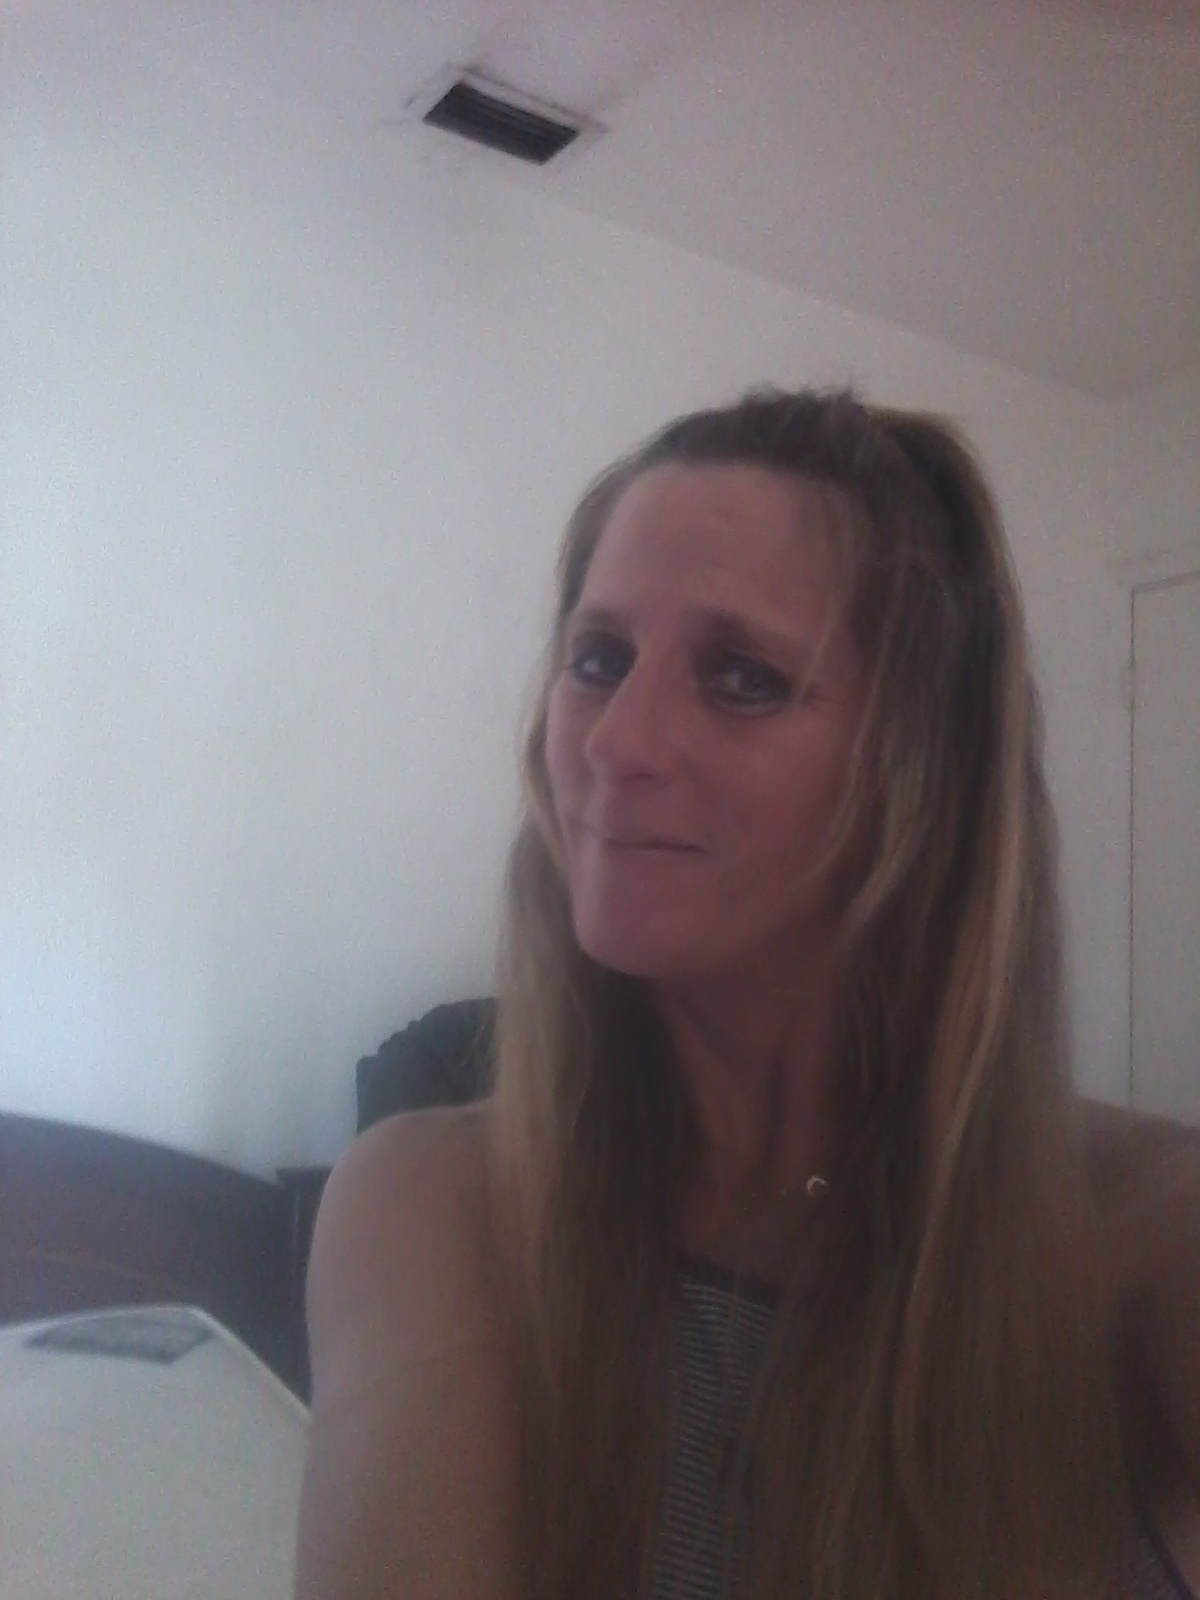 SugarBaby Lifes Short lets have fun!! Joannalee84 Athletic